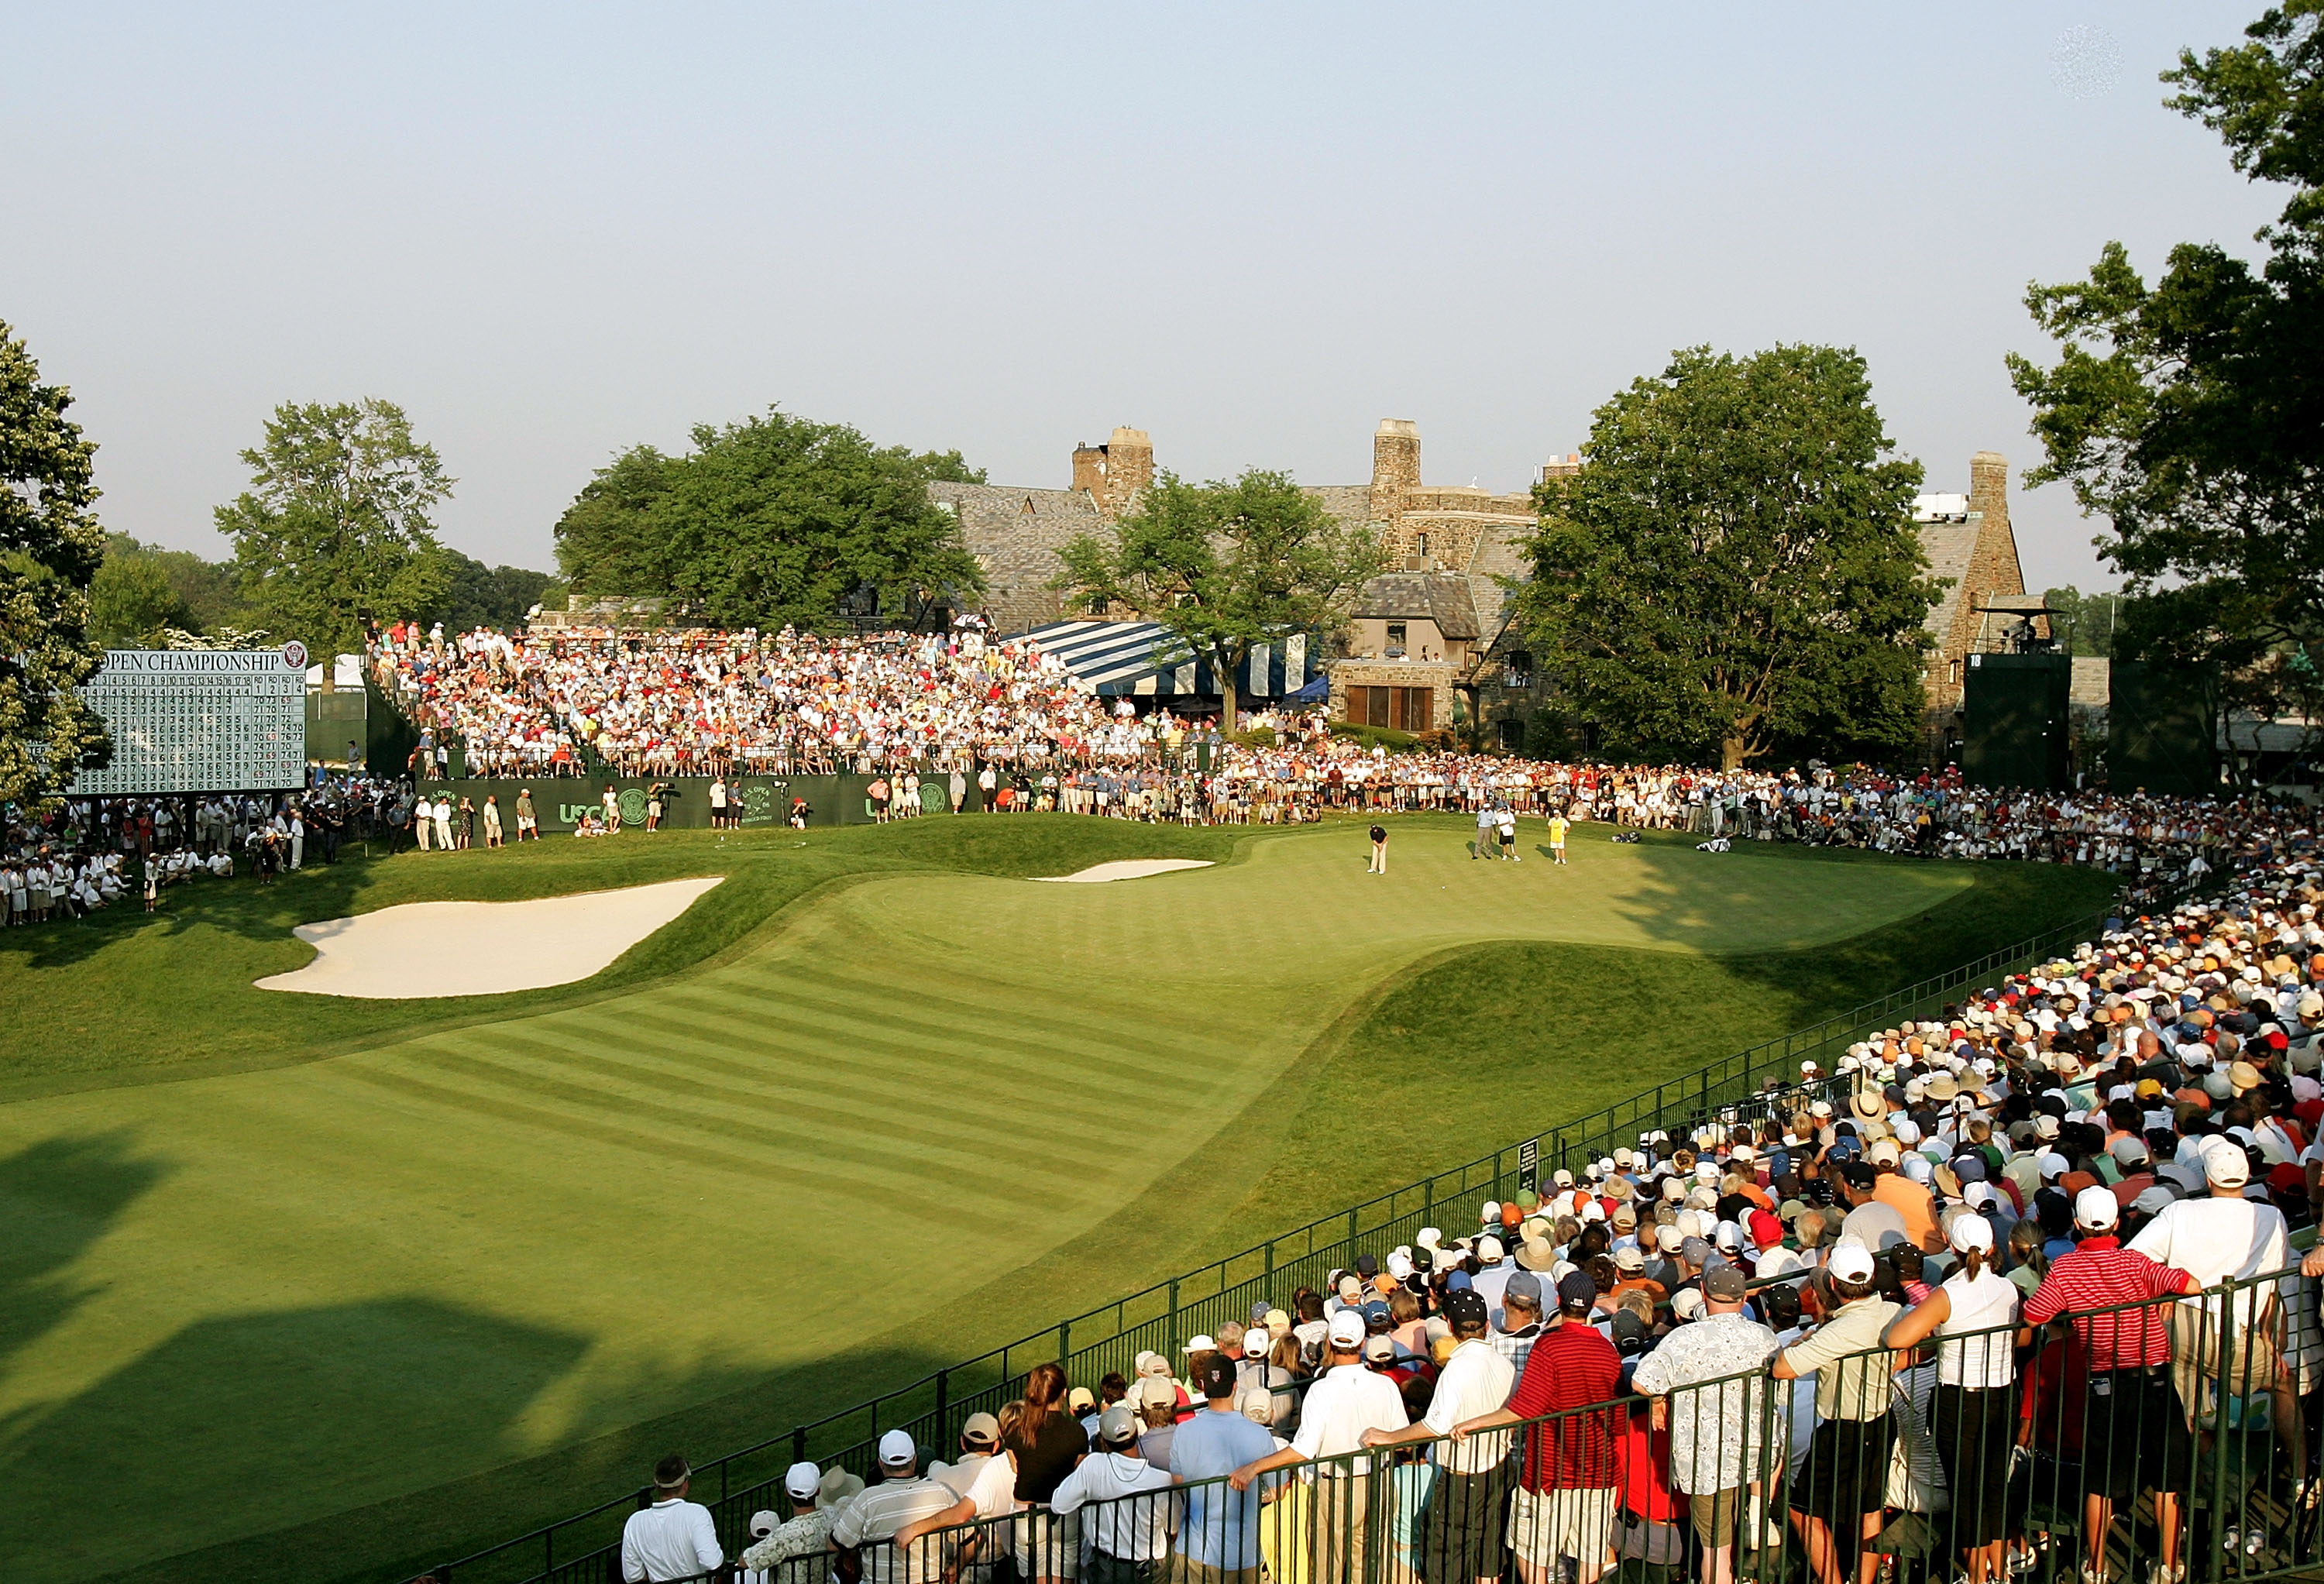 Winged Foot Golf Club is one of the most iconic golf courses to grace the PGA Tour, but how did it get its famous and unique name?